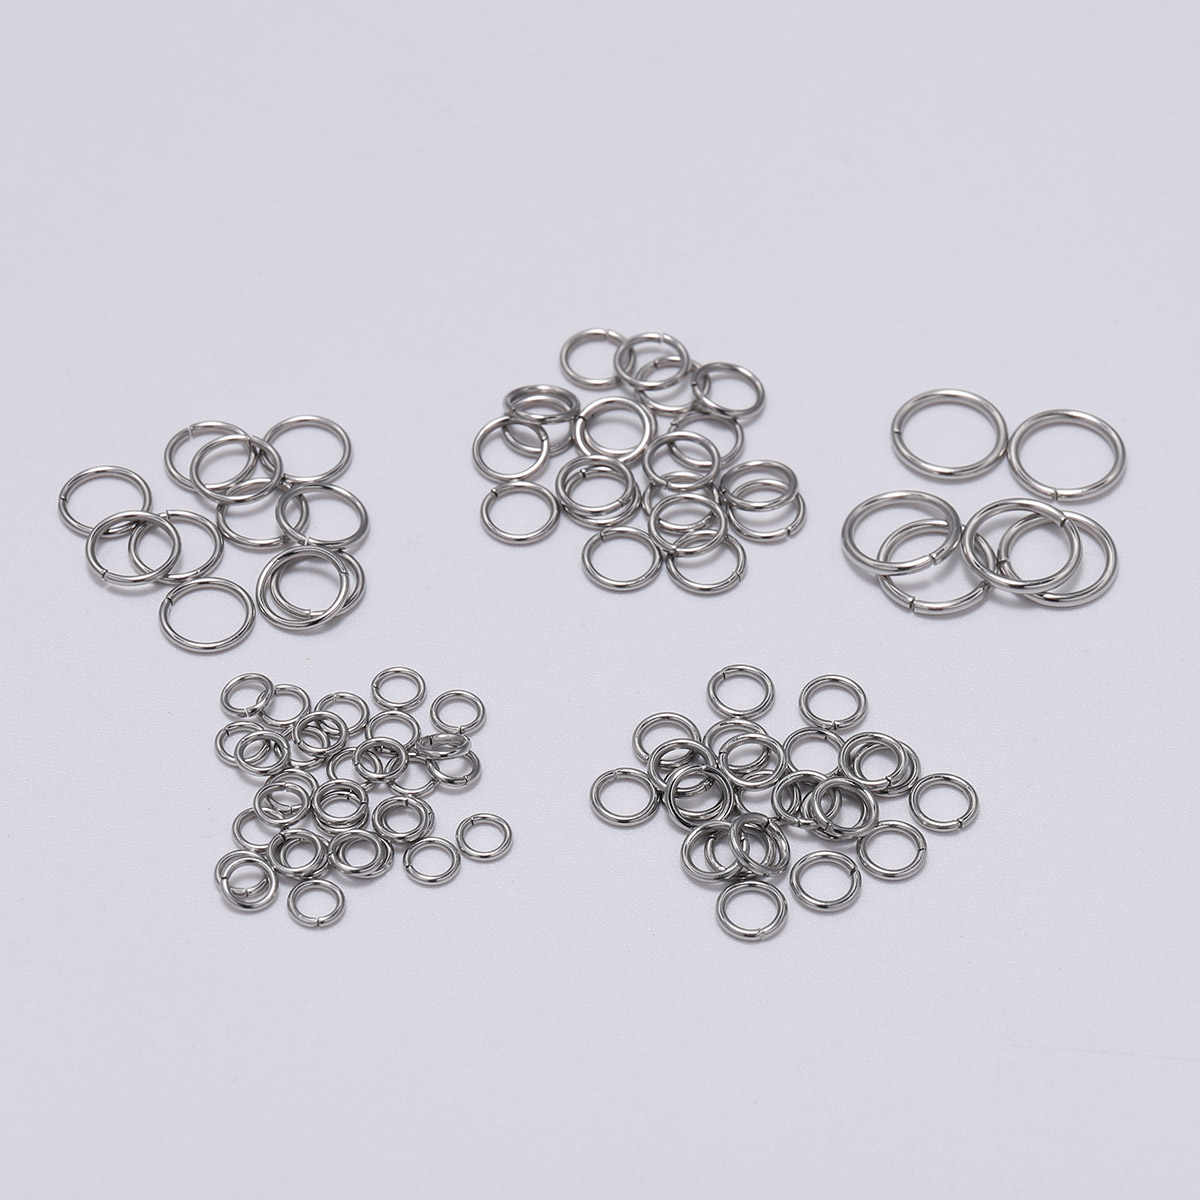 1000pcs Stainless Steel Open Jump Rings Jewelry Finding Craft  4//5//6//7//8//9//10mm